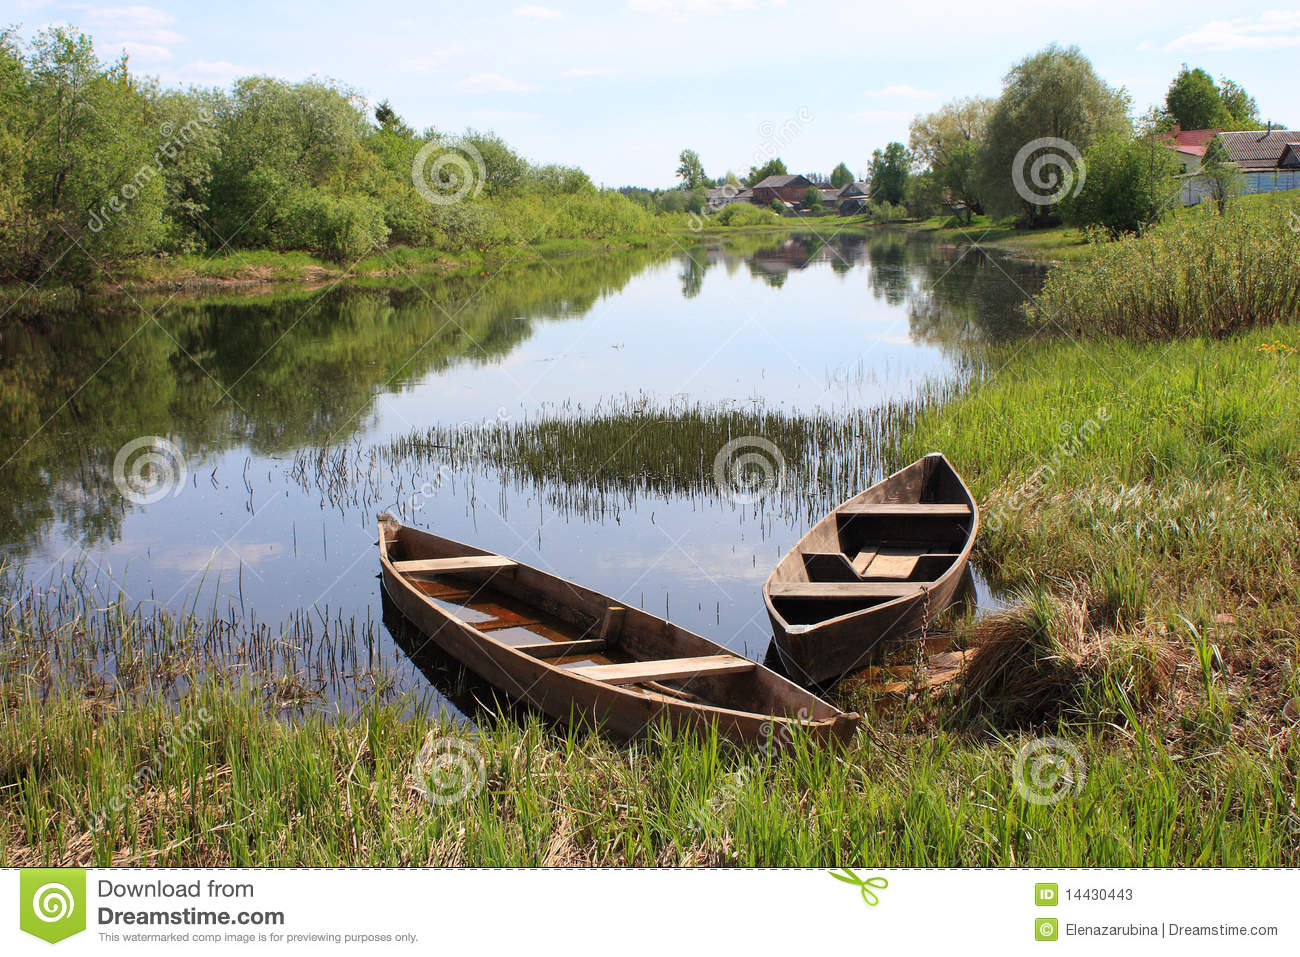 Old Wooden Boats At The River Stock Image - Image: 14430443